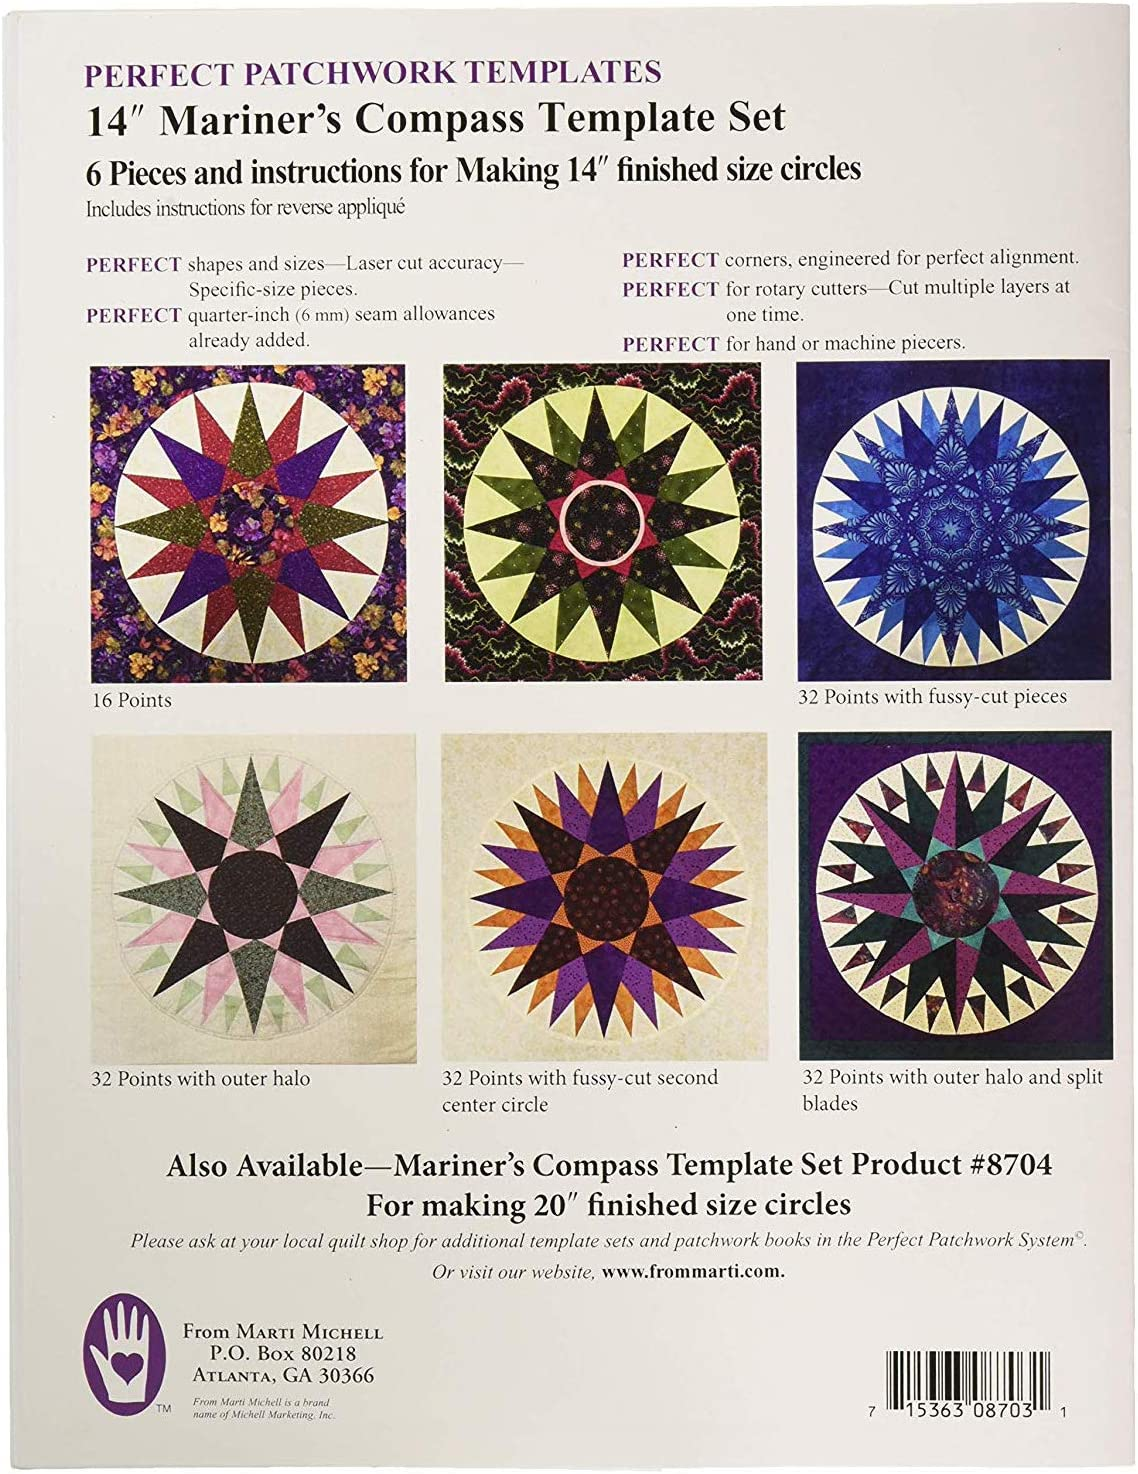 Marti Michell 14 Mariners Compass Acrylic Template Set for Quilting 6 Pieces